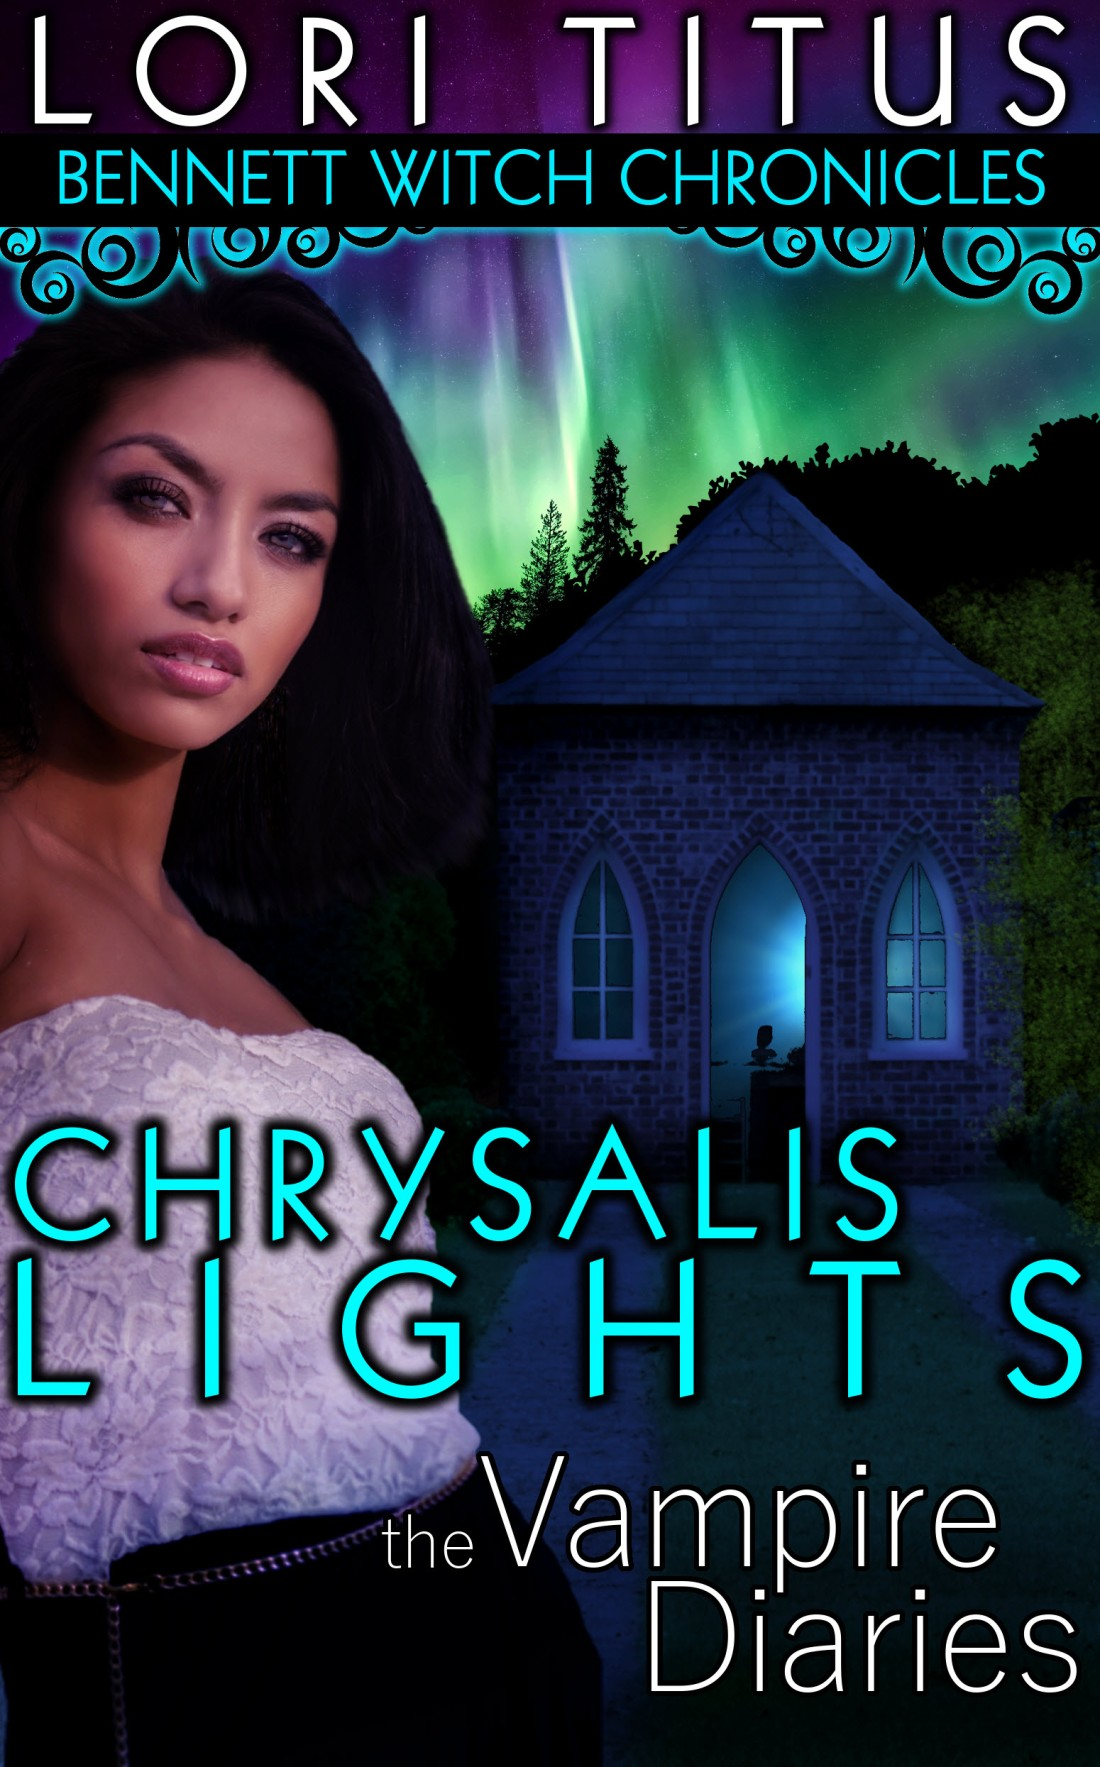 Bennett Witch Chronicles - Chrysalis Lights by Lori Titus